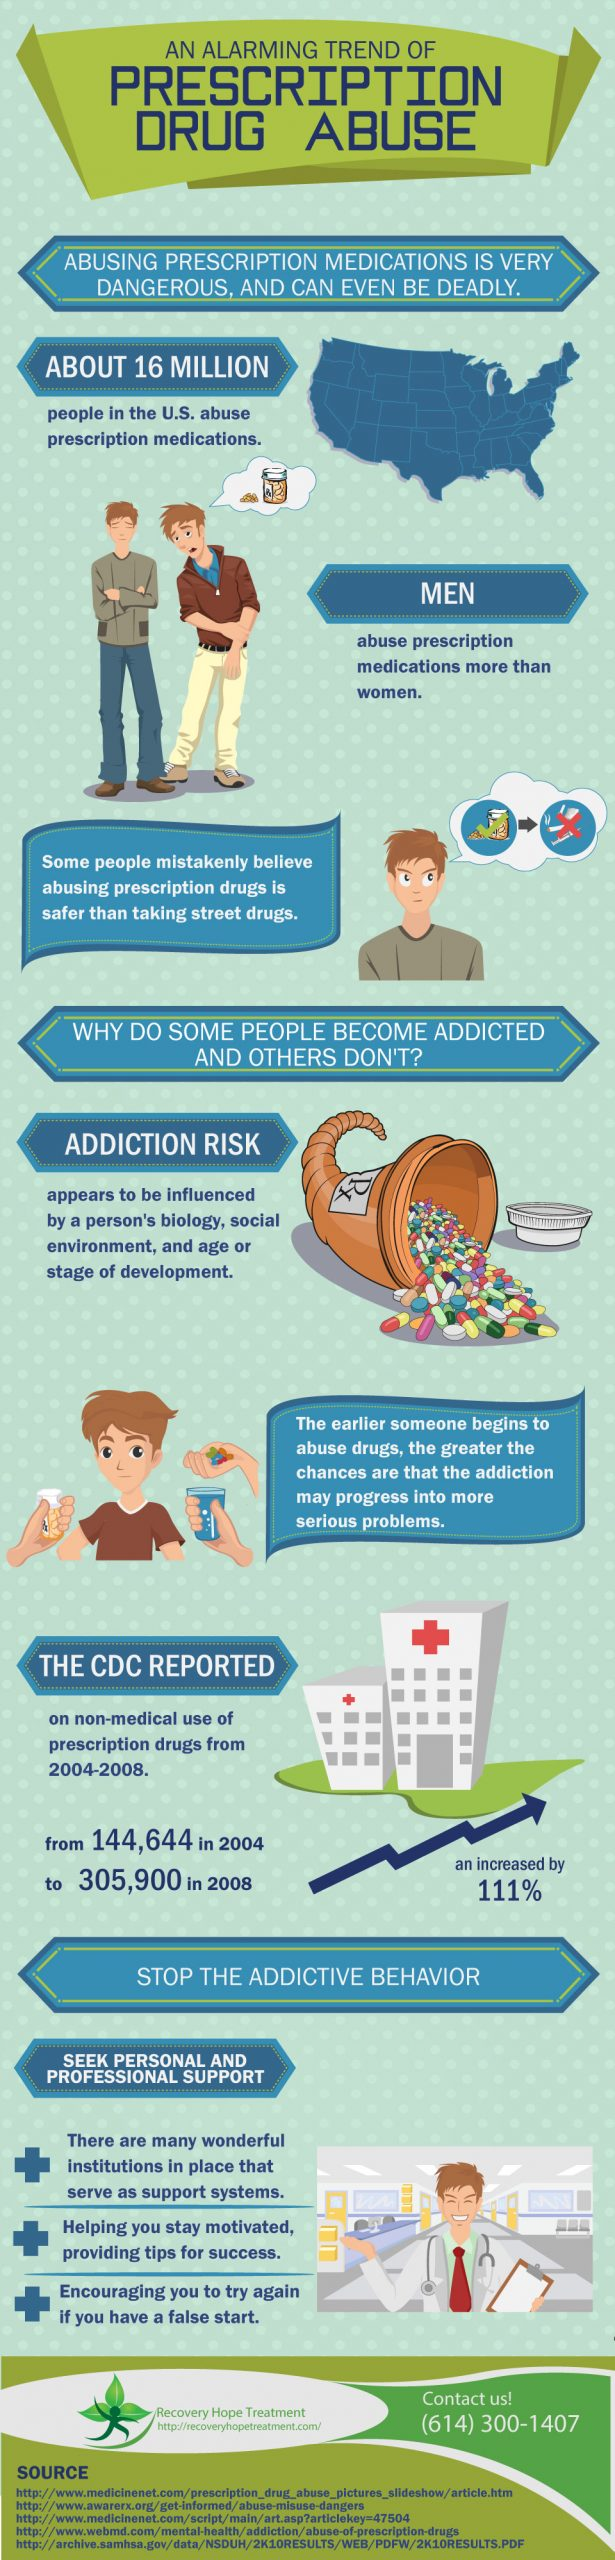 An Alarming Trend About Prescription Drug Abuse